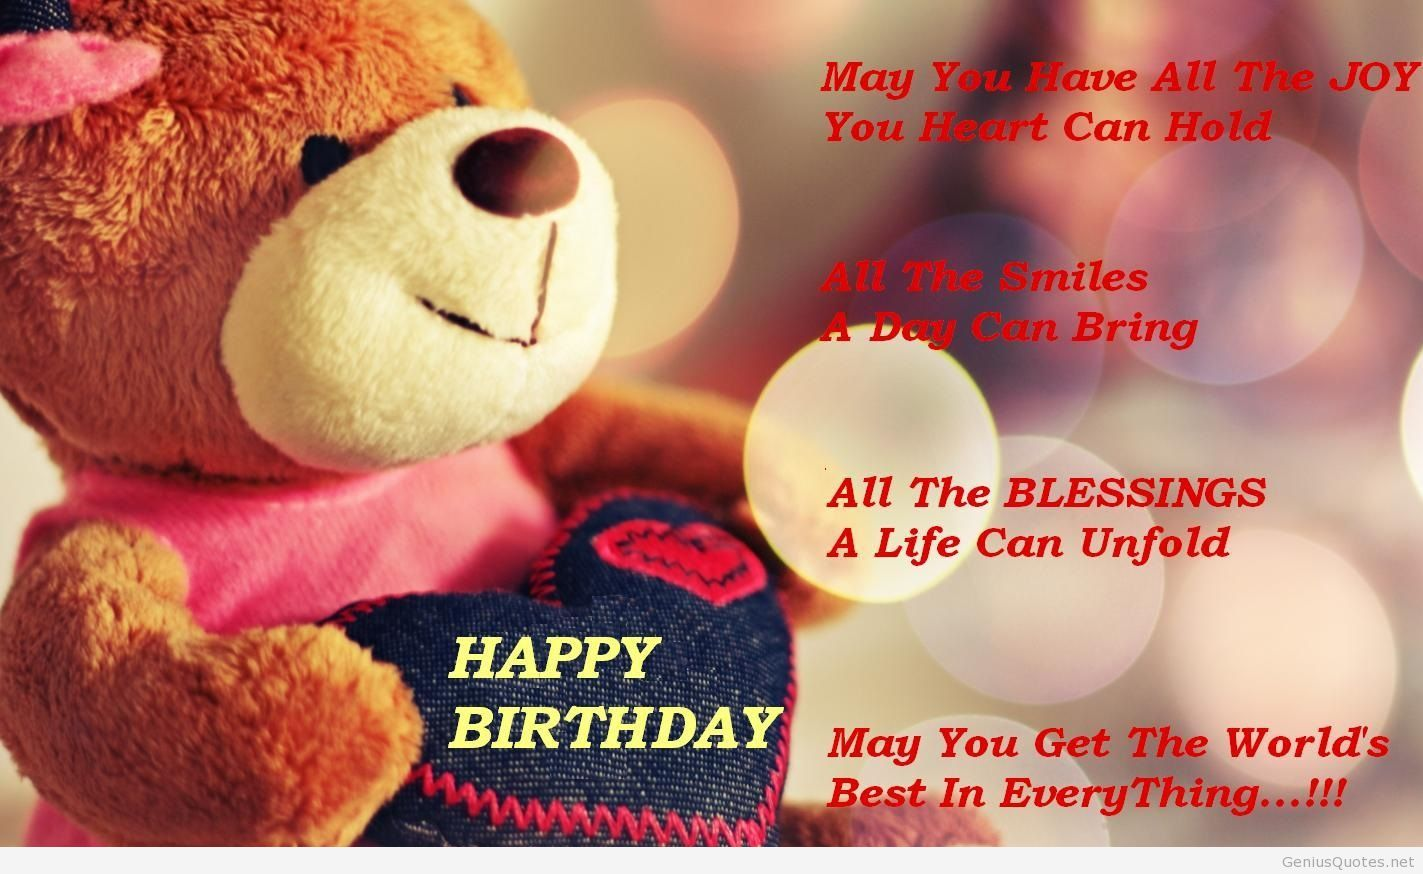 birthday wallpaper quotes ; Happy-Birthday-HD-wallpaper-quote-2014-image